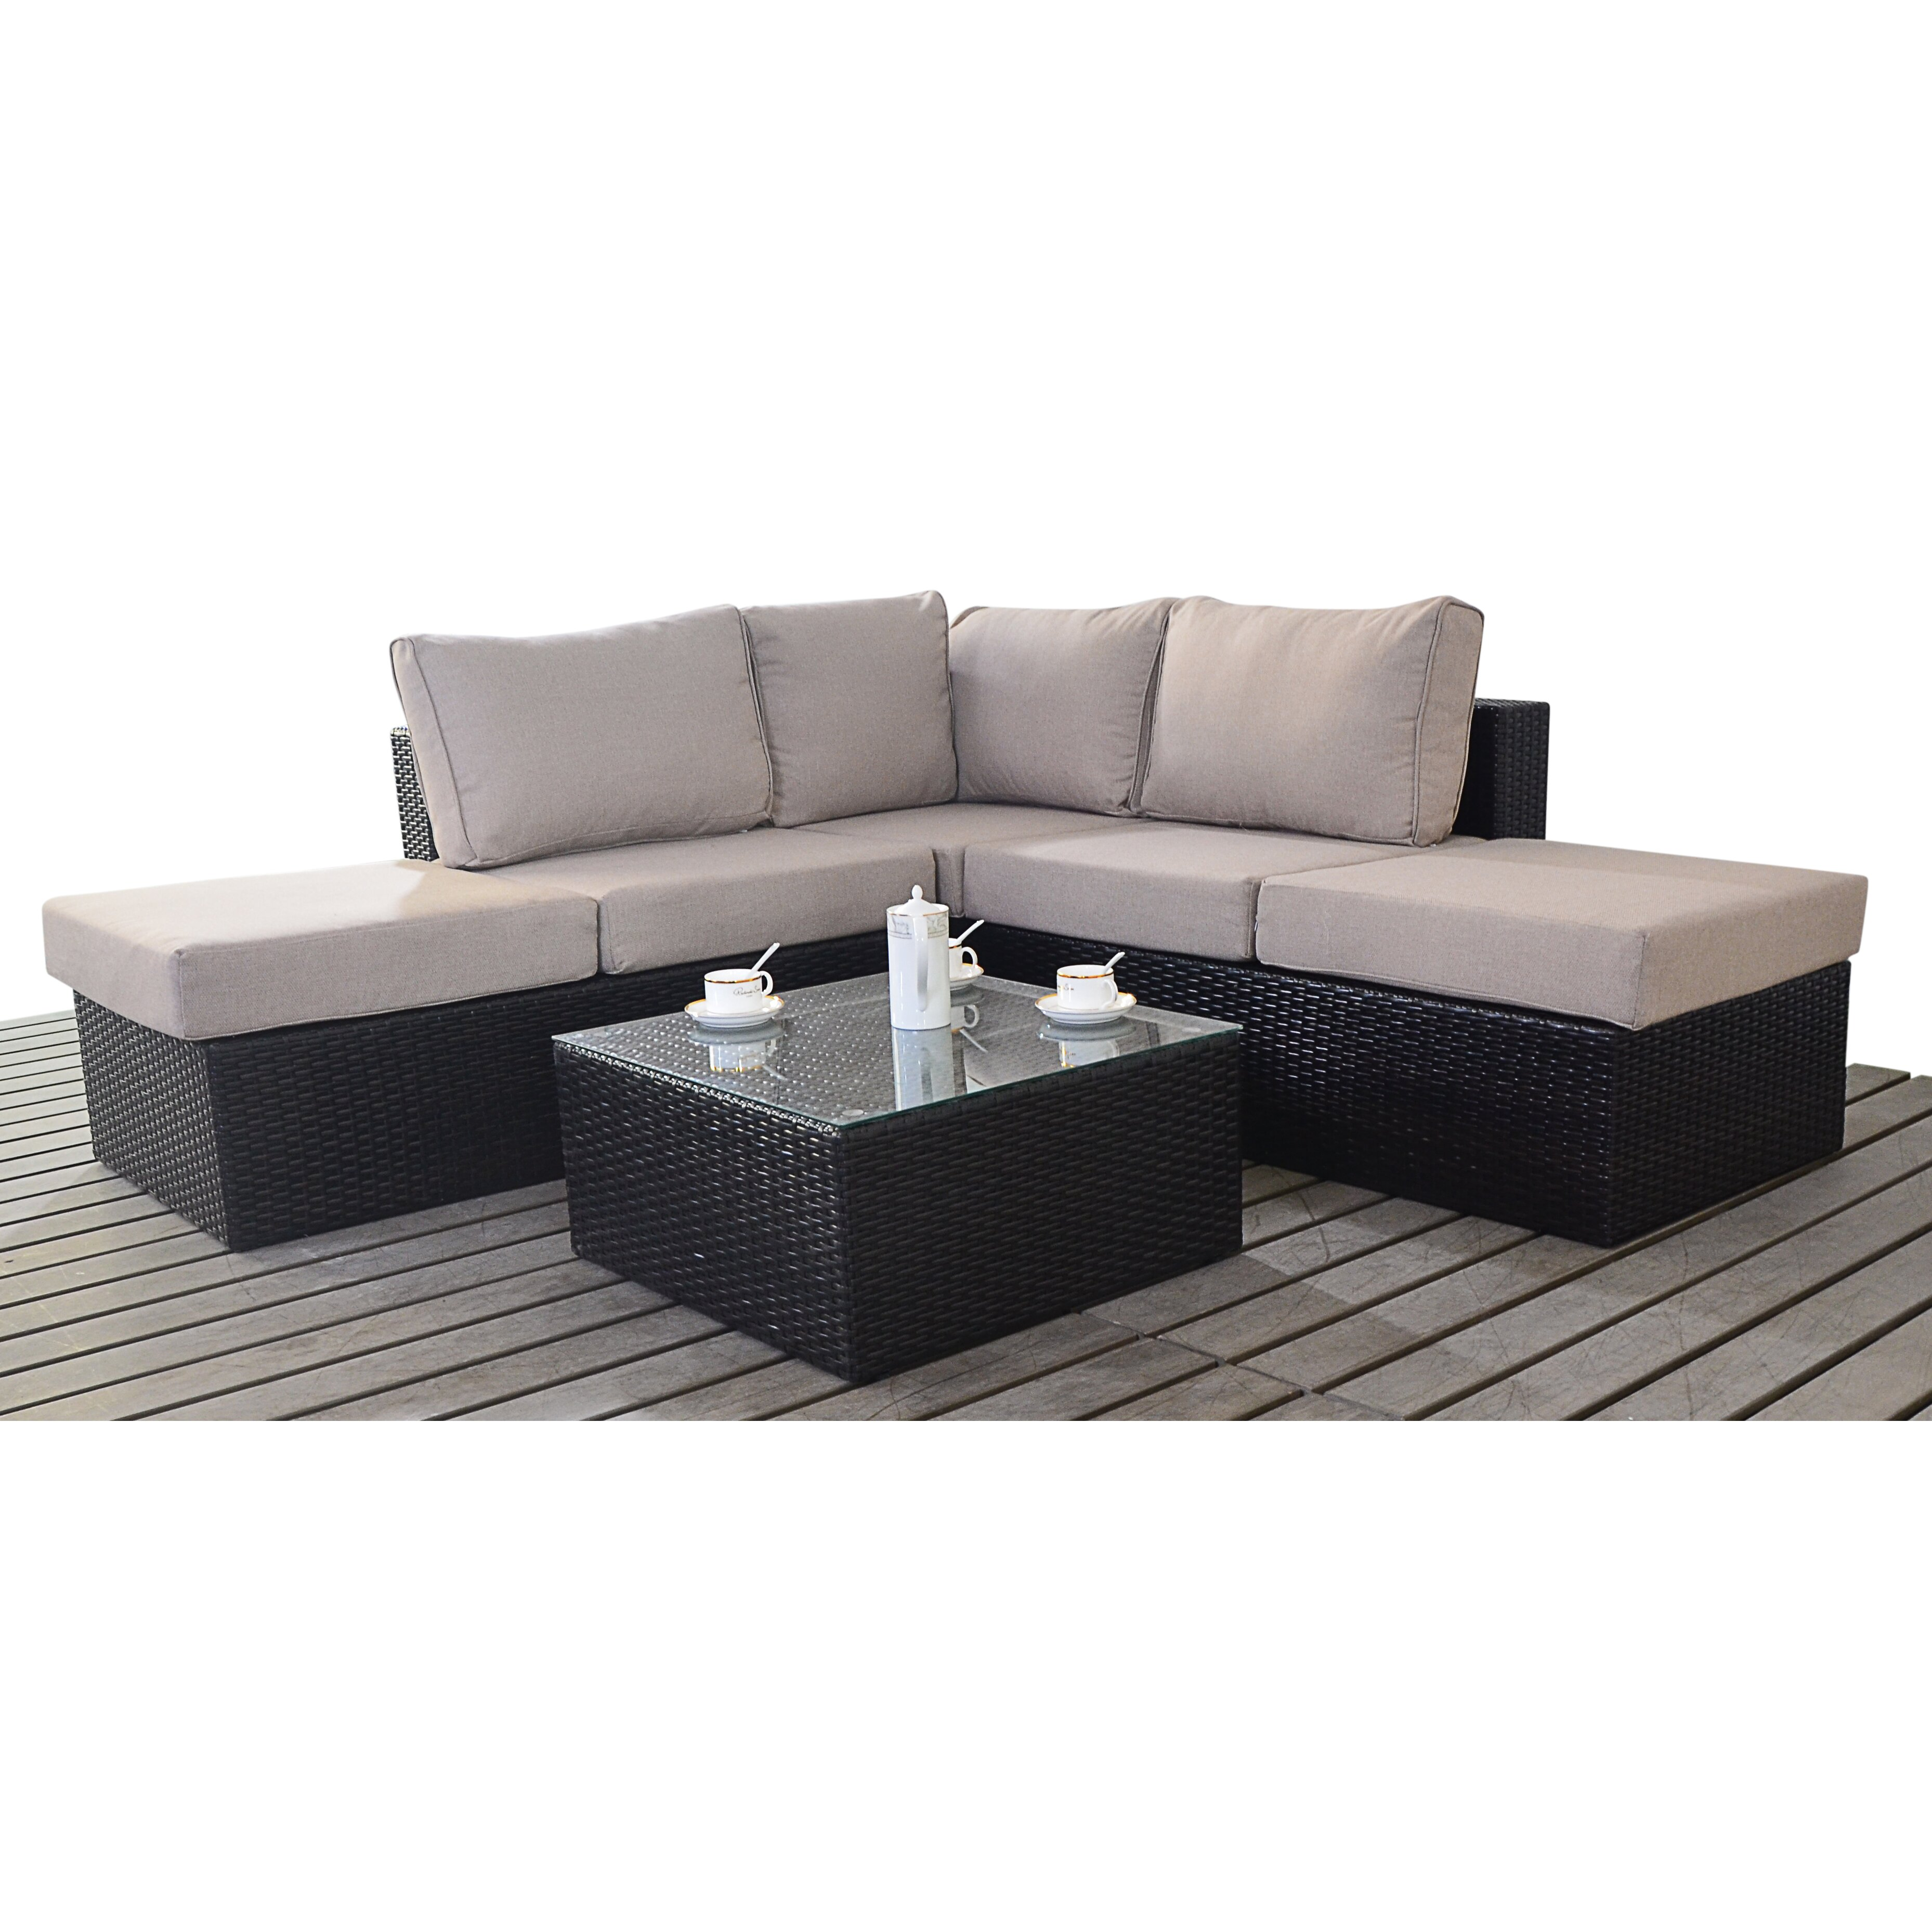 Port royal luxe 4 seater sectional sofa set with cushions for Sectional sofa set